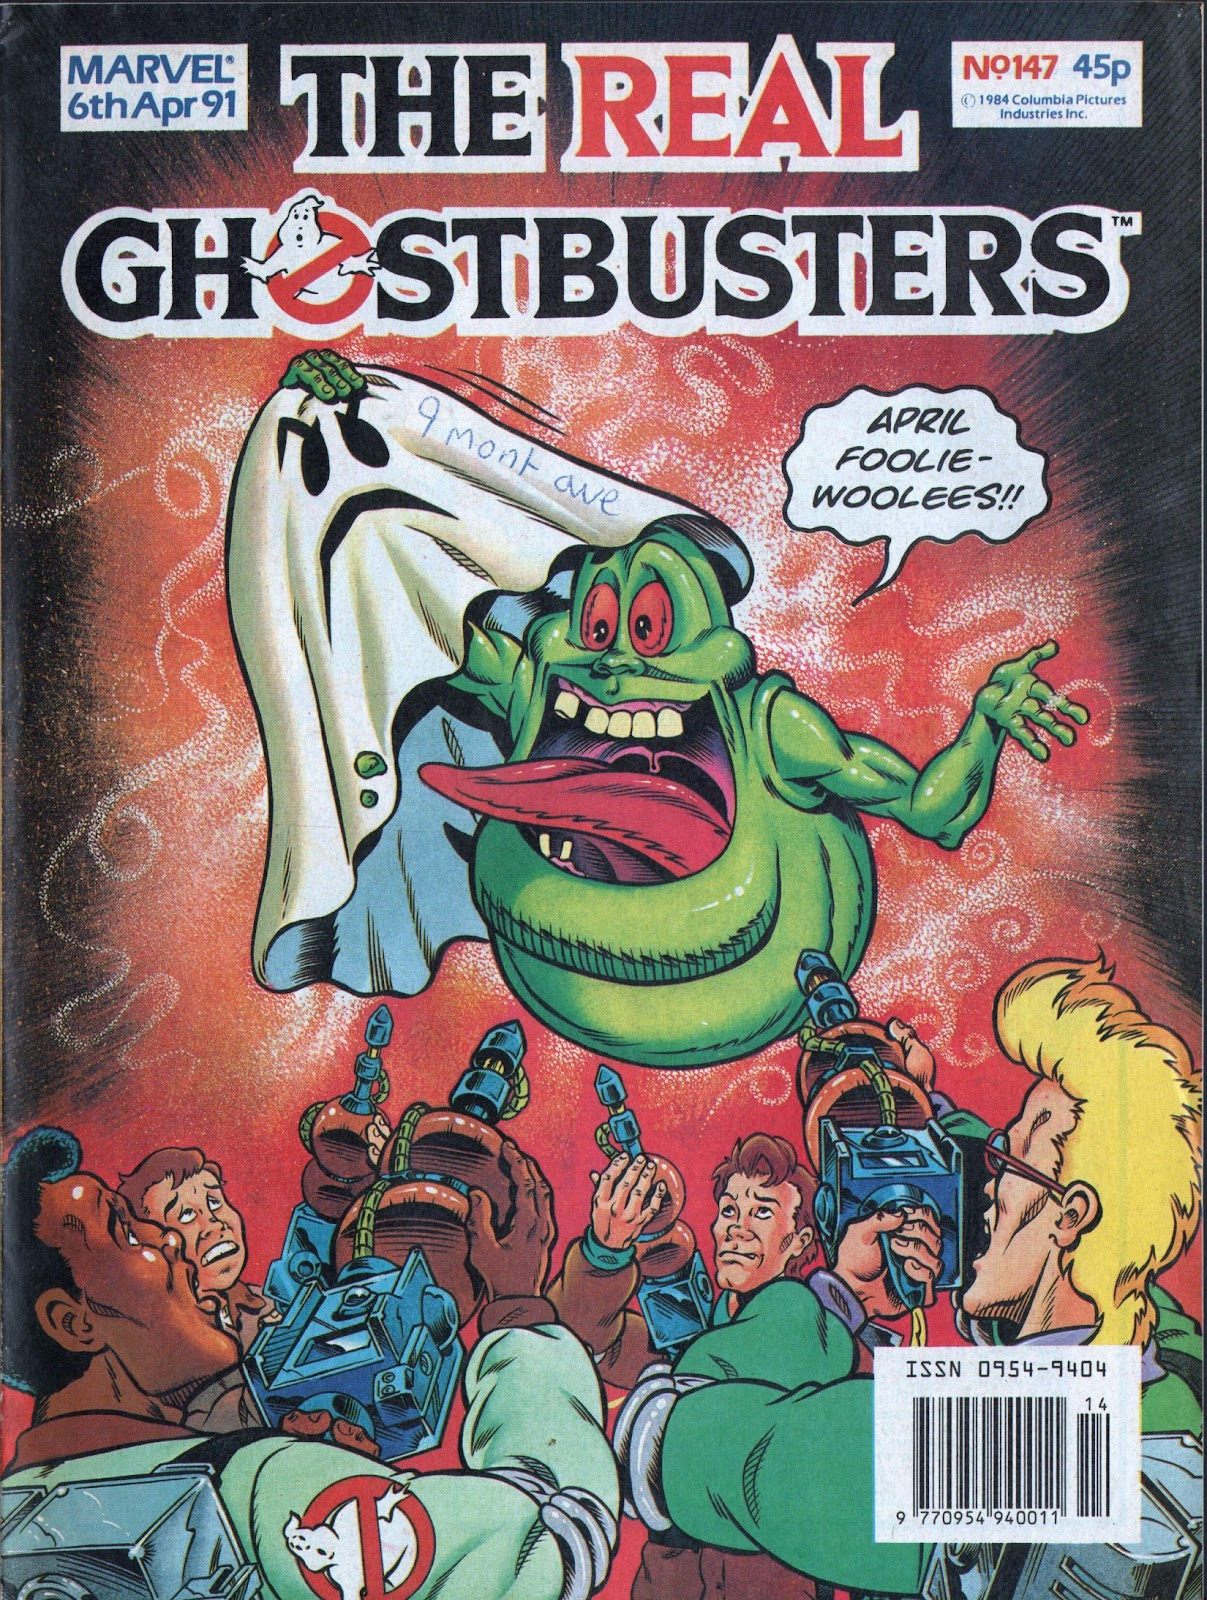 The Real Ghostbusters 147 Page 1